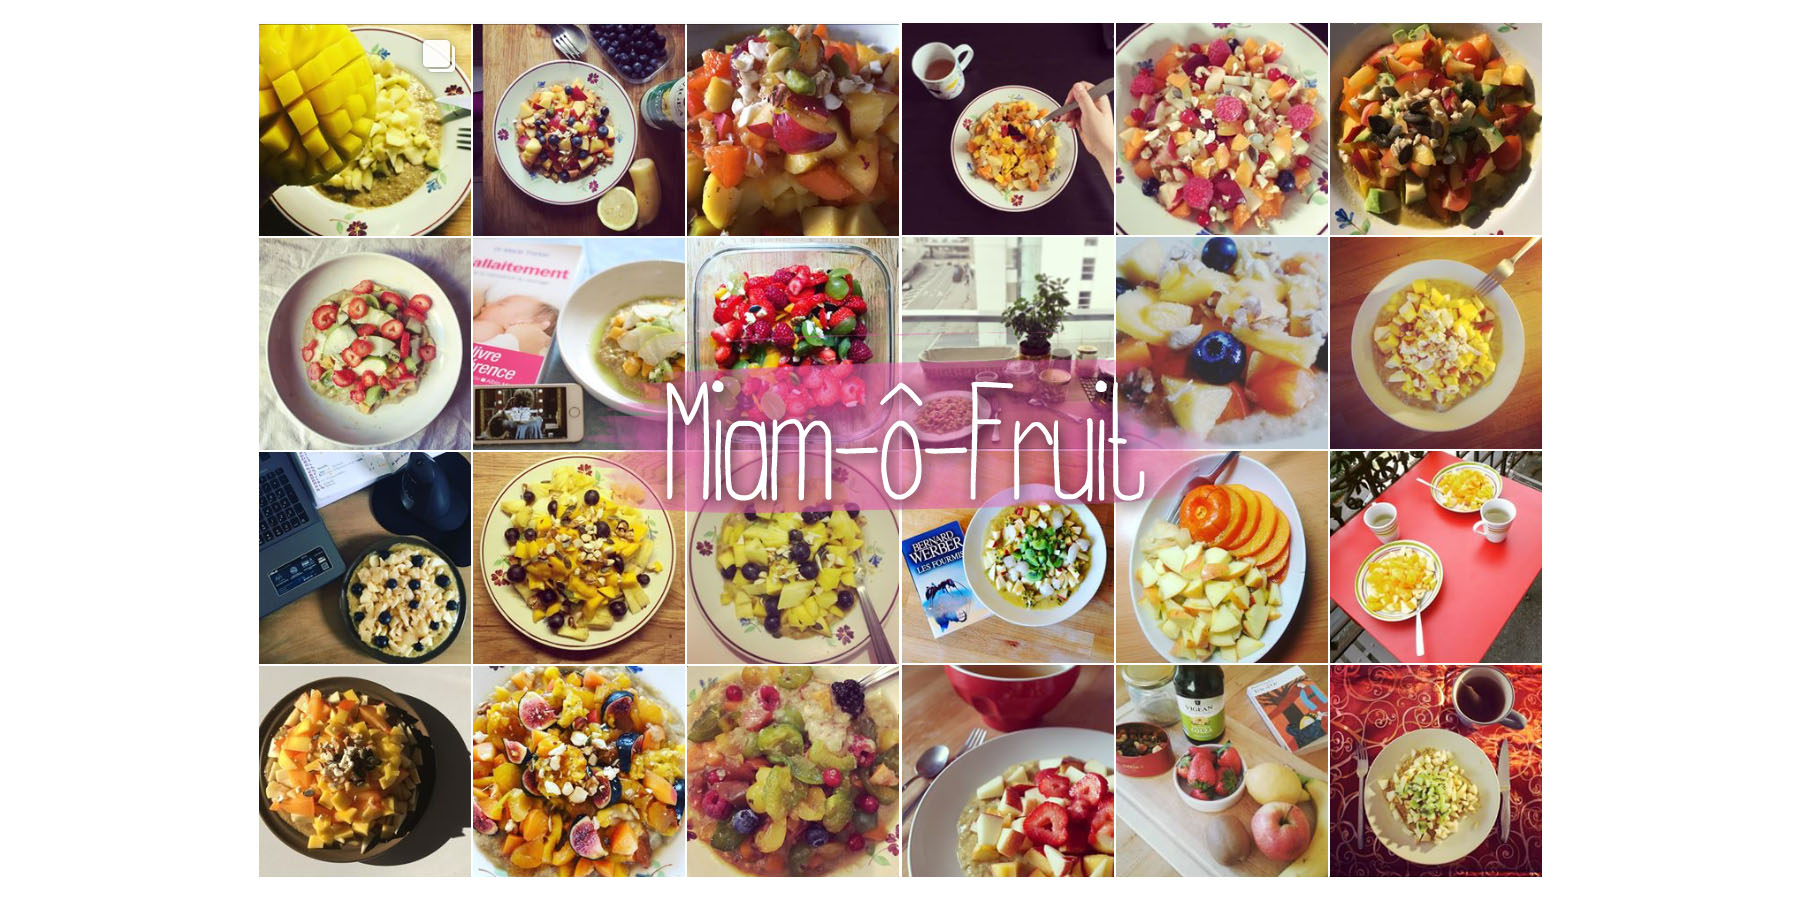 Miam-ô-Fruit sur Instagram